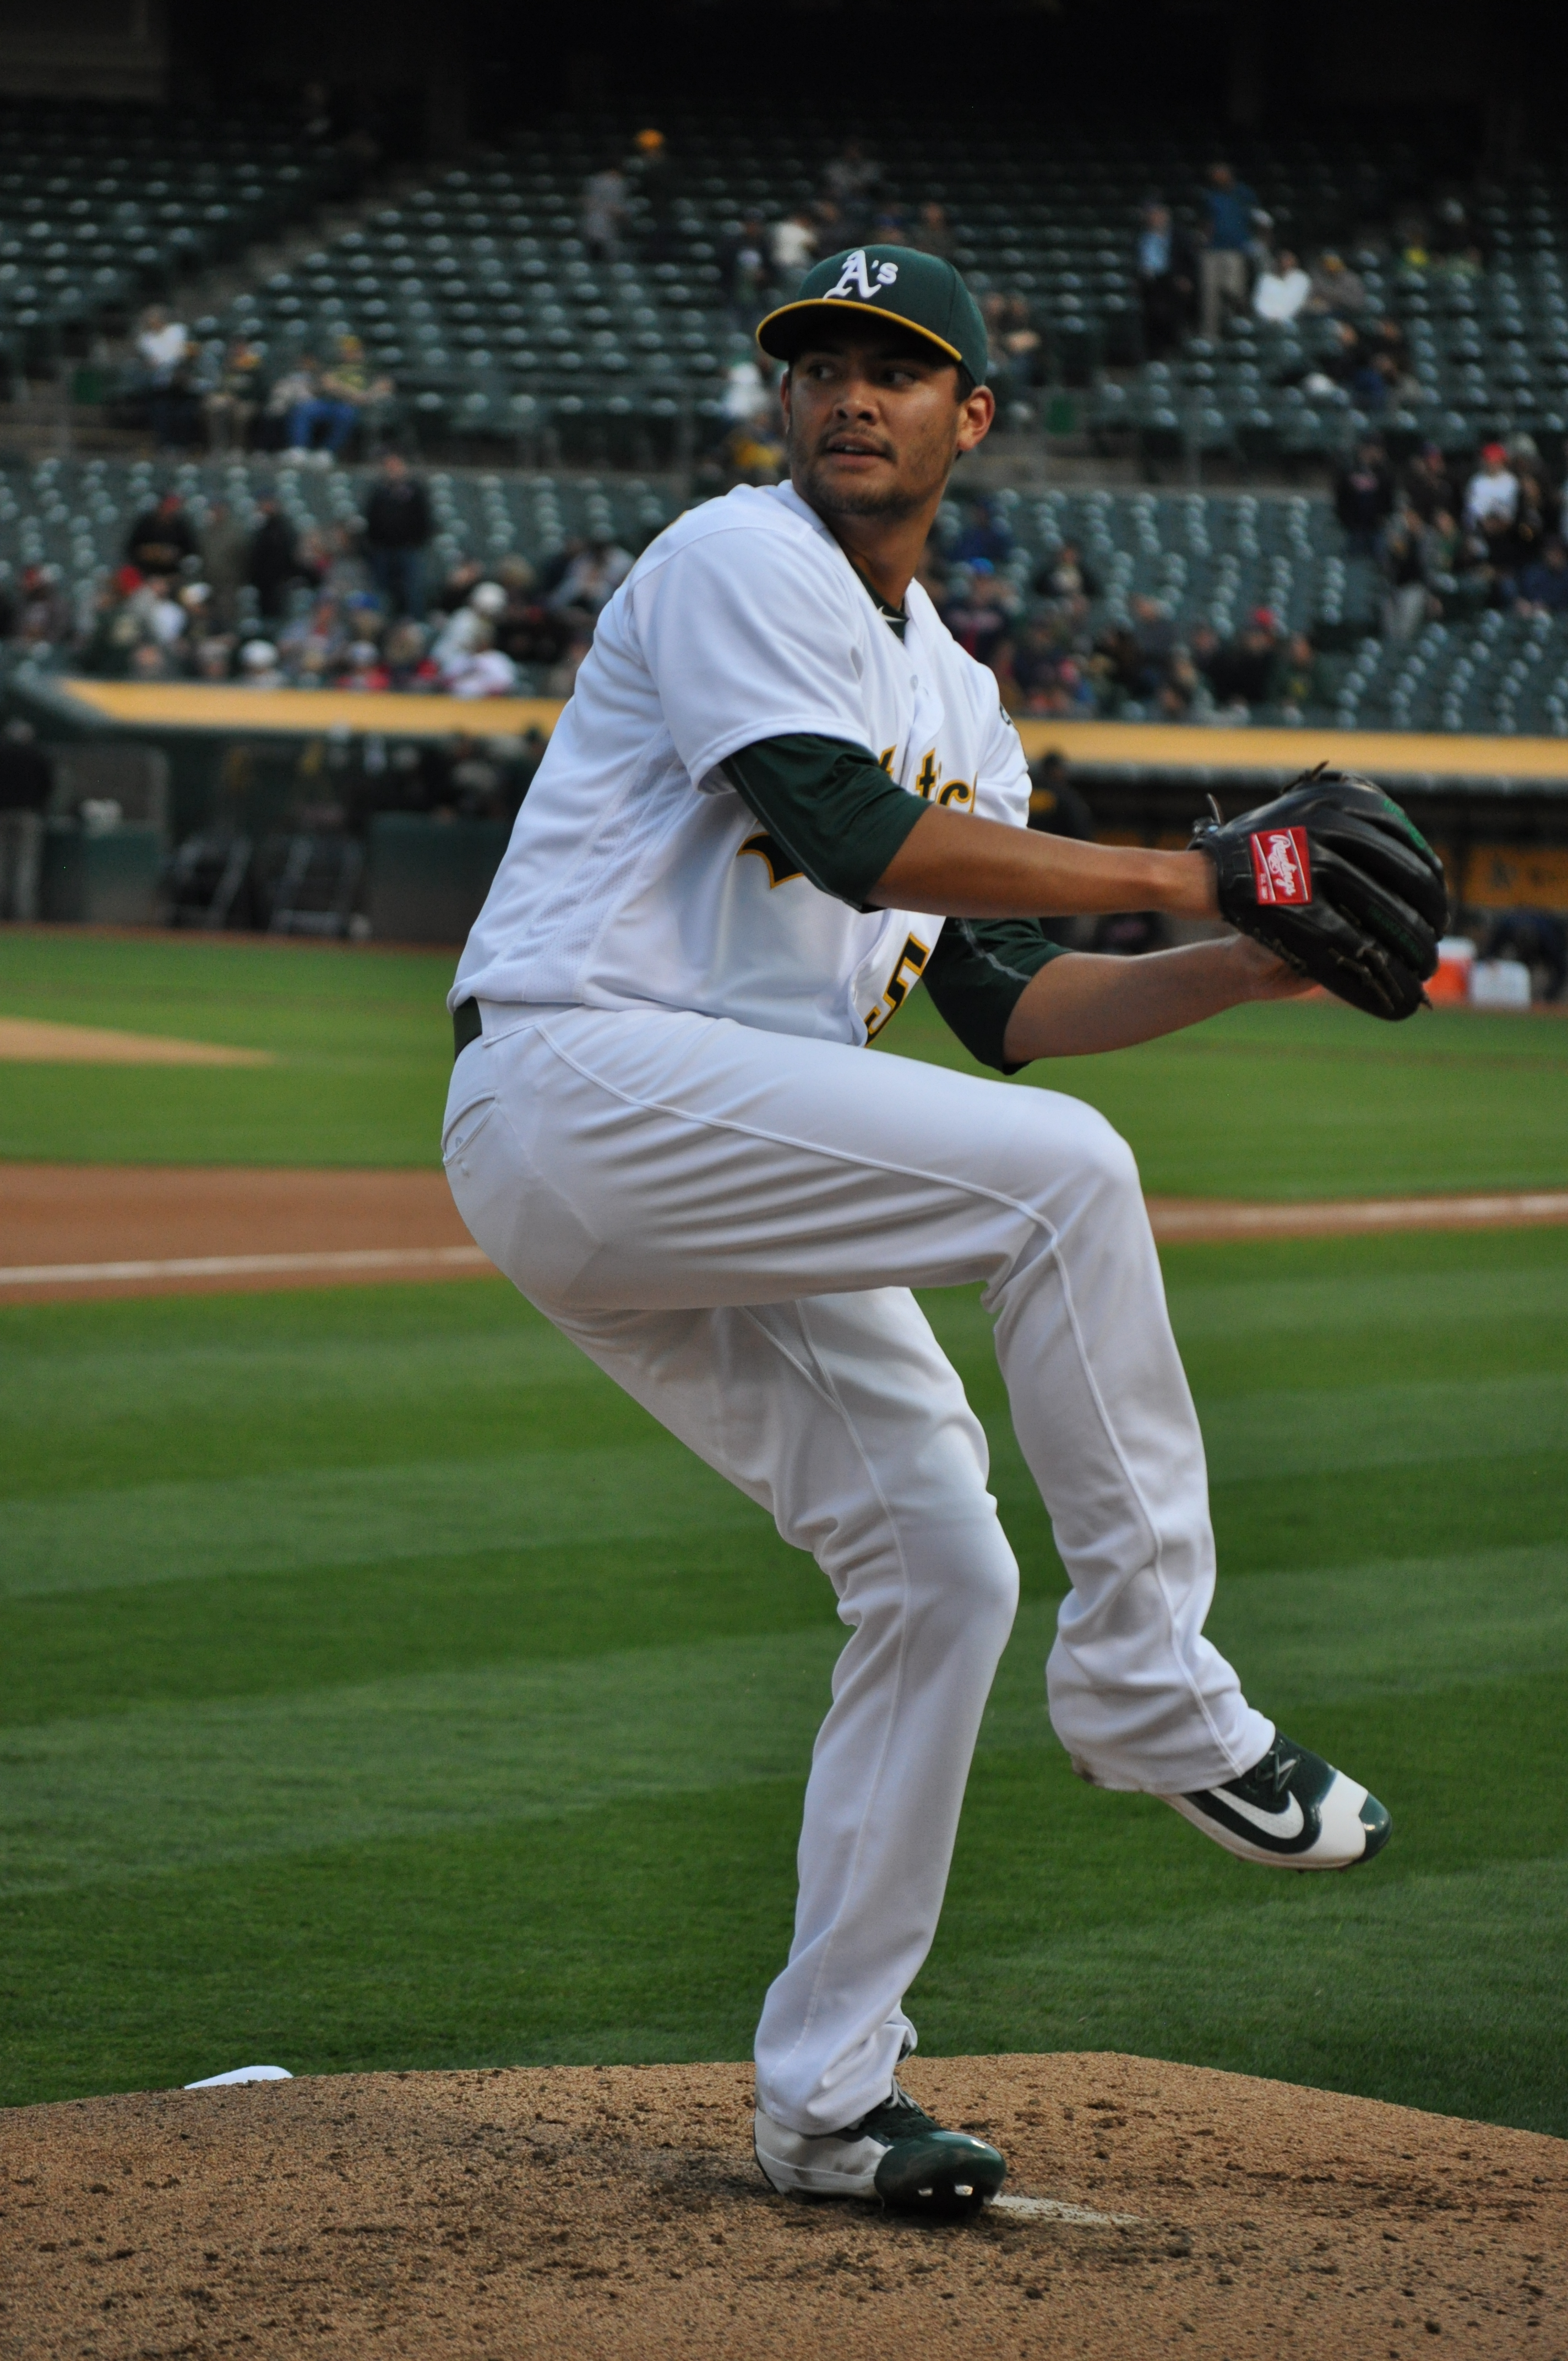 September 21, 2019 -- The Athletics beat the Rangers at home, 12 to 3. The Athletics starting pitcher was Sean Manaea and top hitter was Marcus Semien.